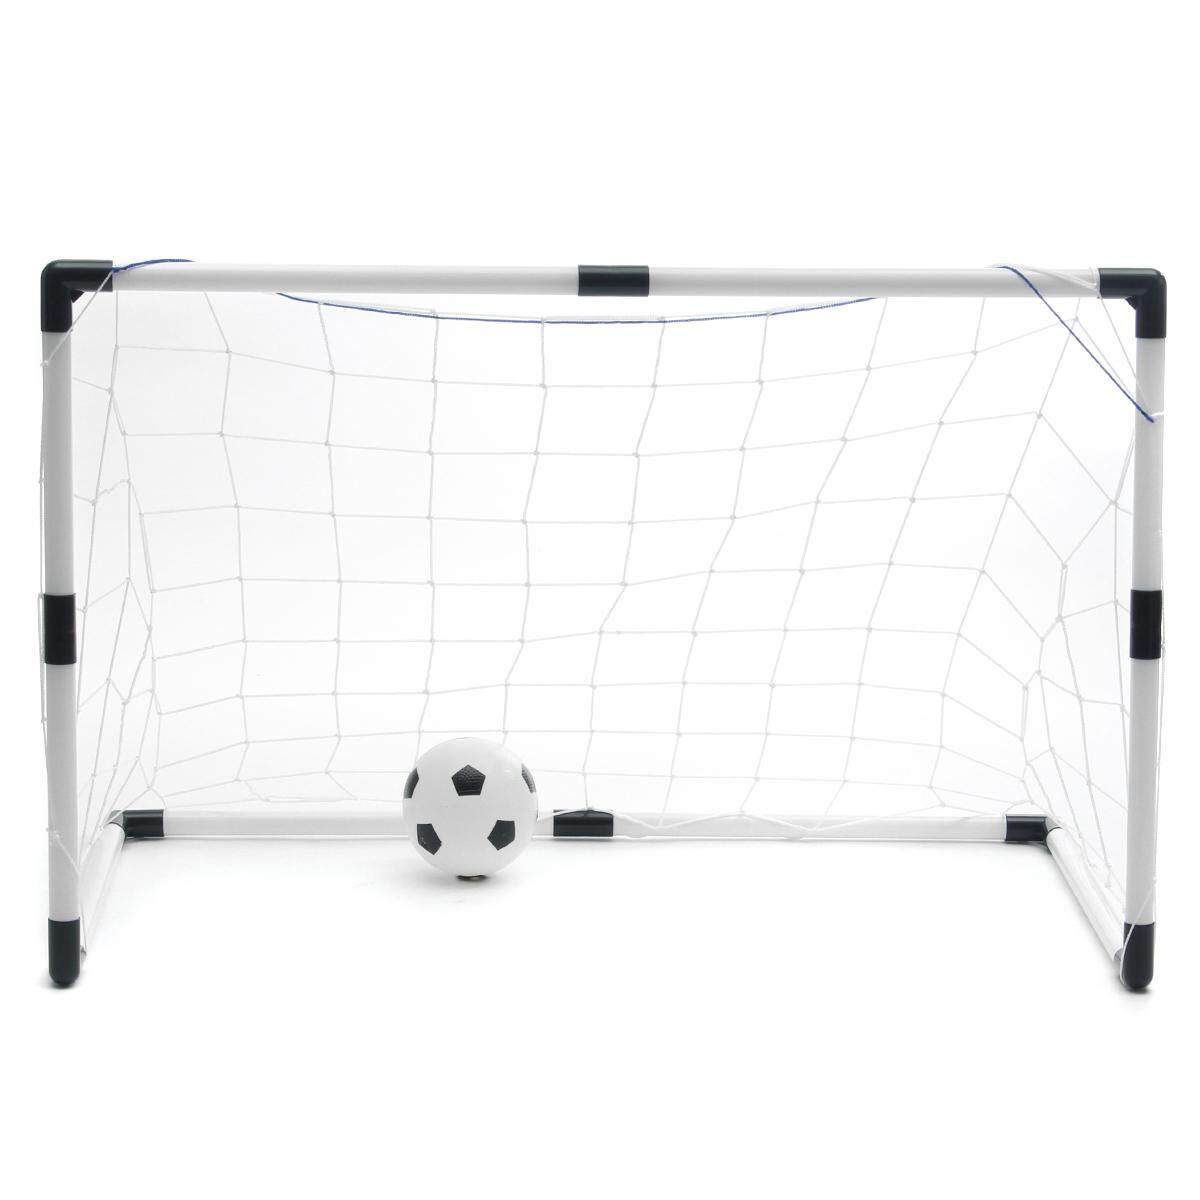 2 Mini Football Soccer Goal Post Net + Ball + Pump Kids Outdoor Sport Training